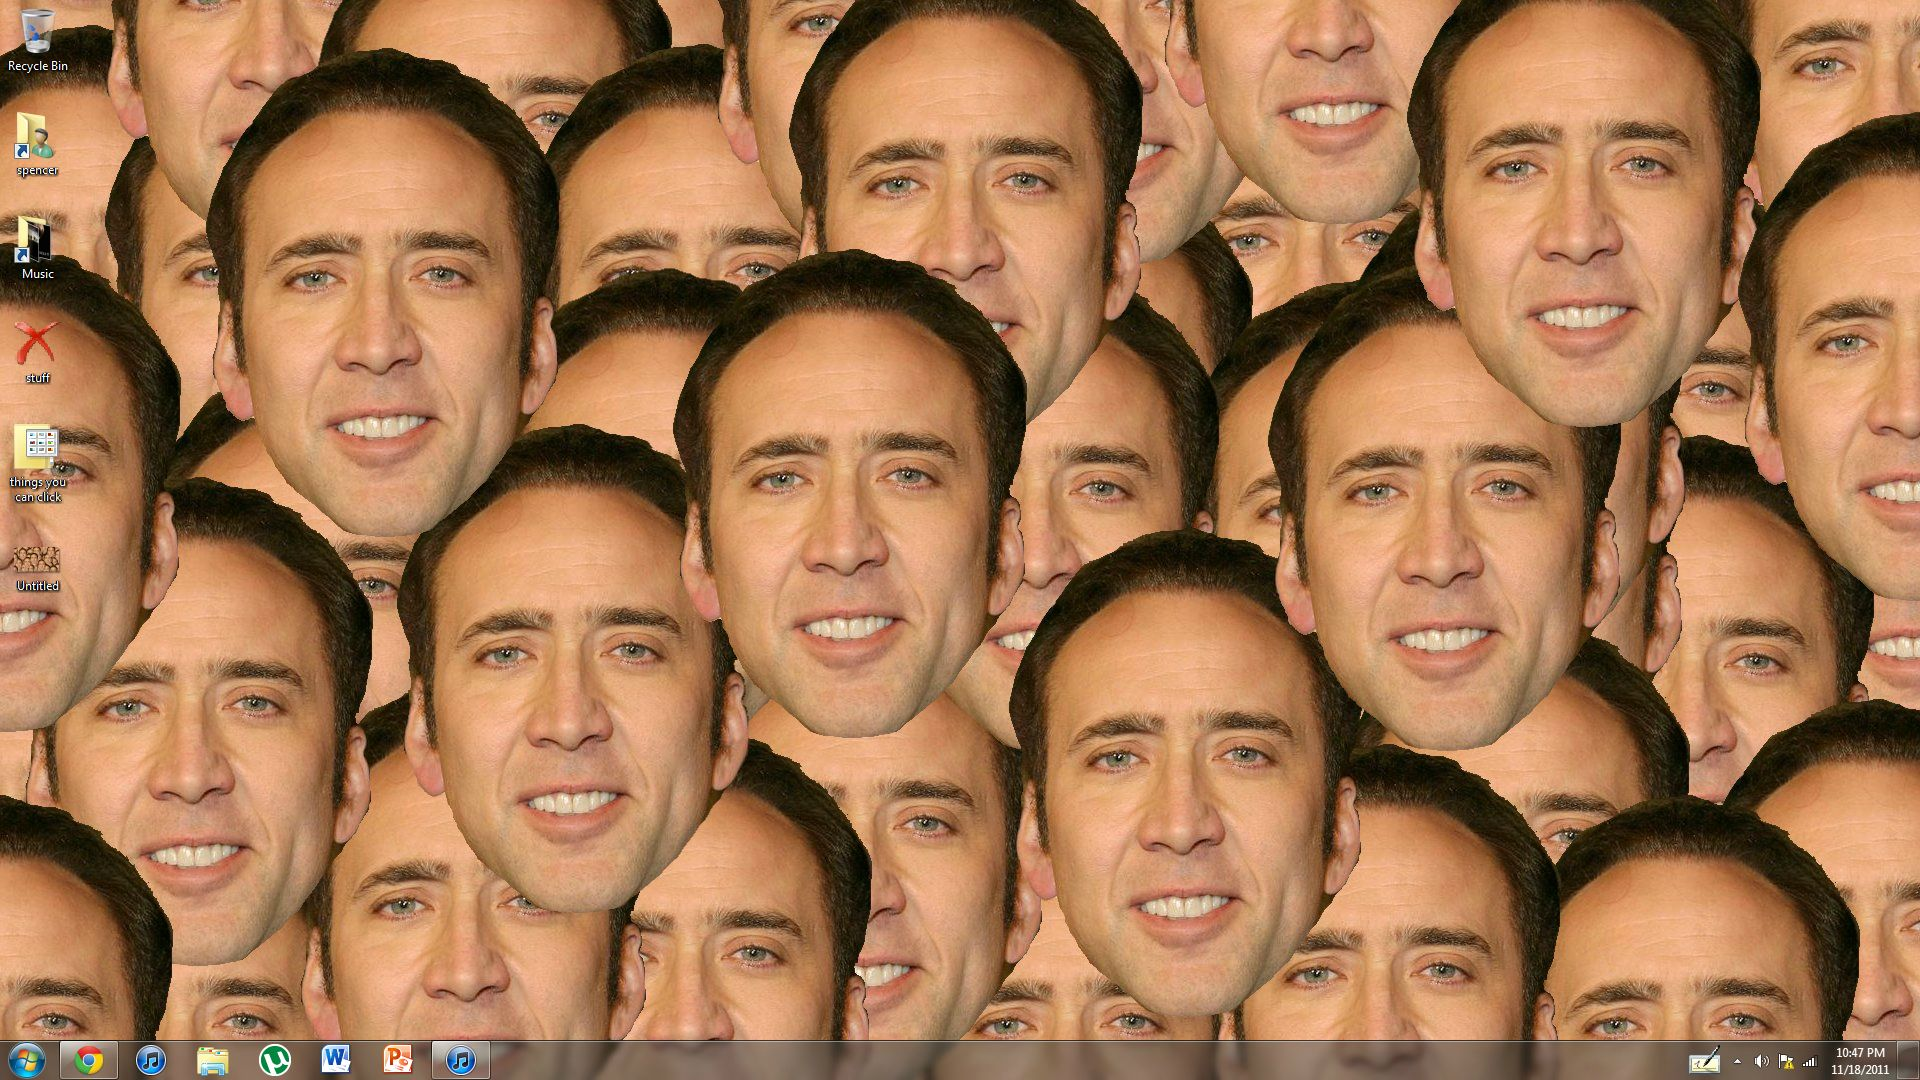 45] Funny Nicolas Cage Wallpaper on WallpaperSafari 1920x1080